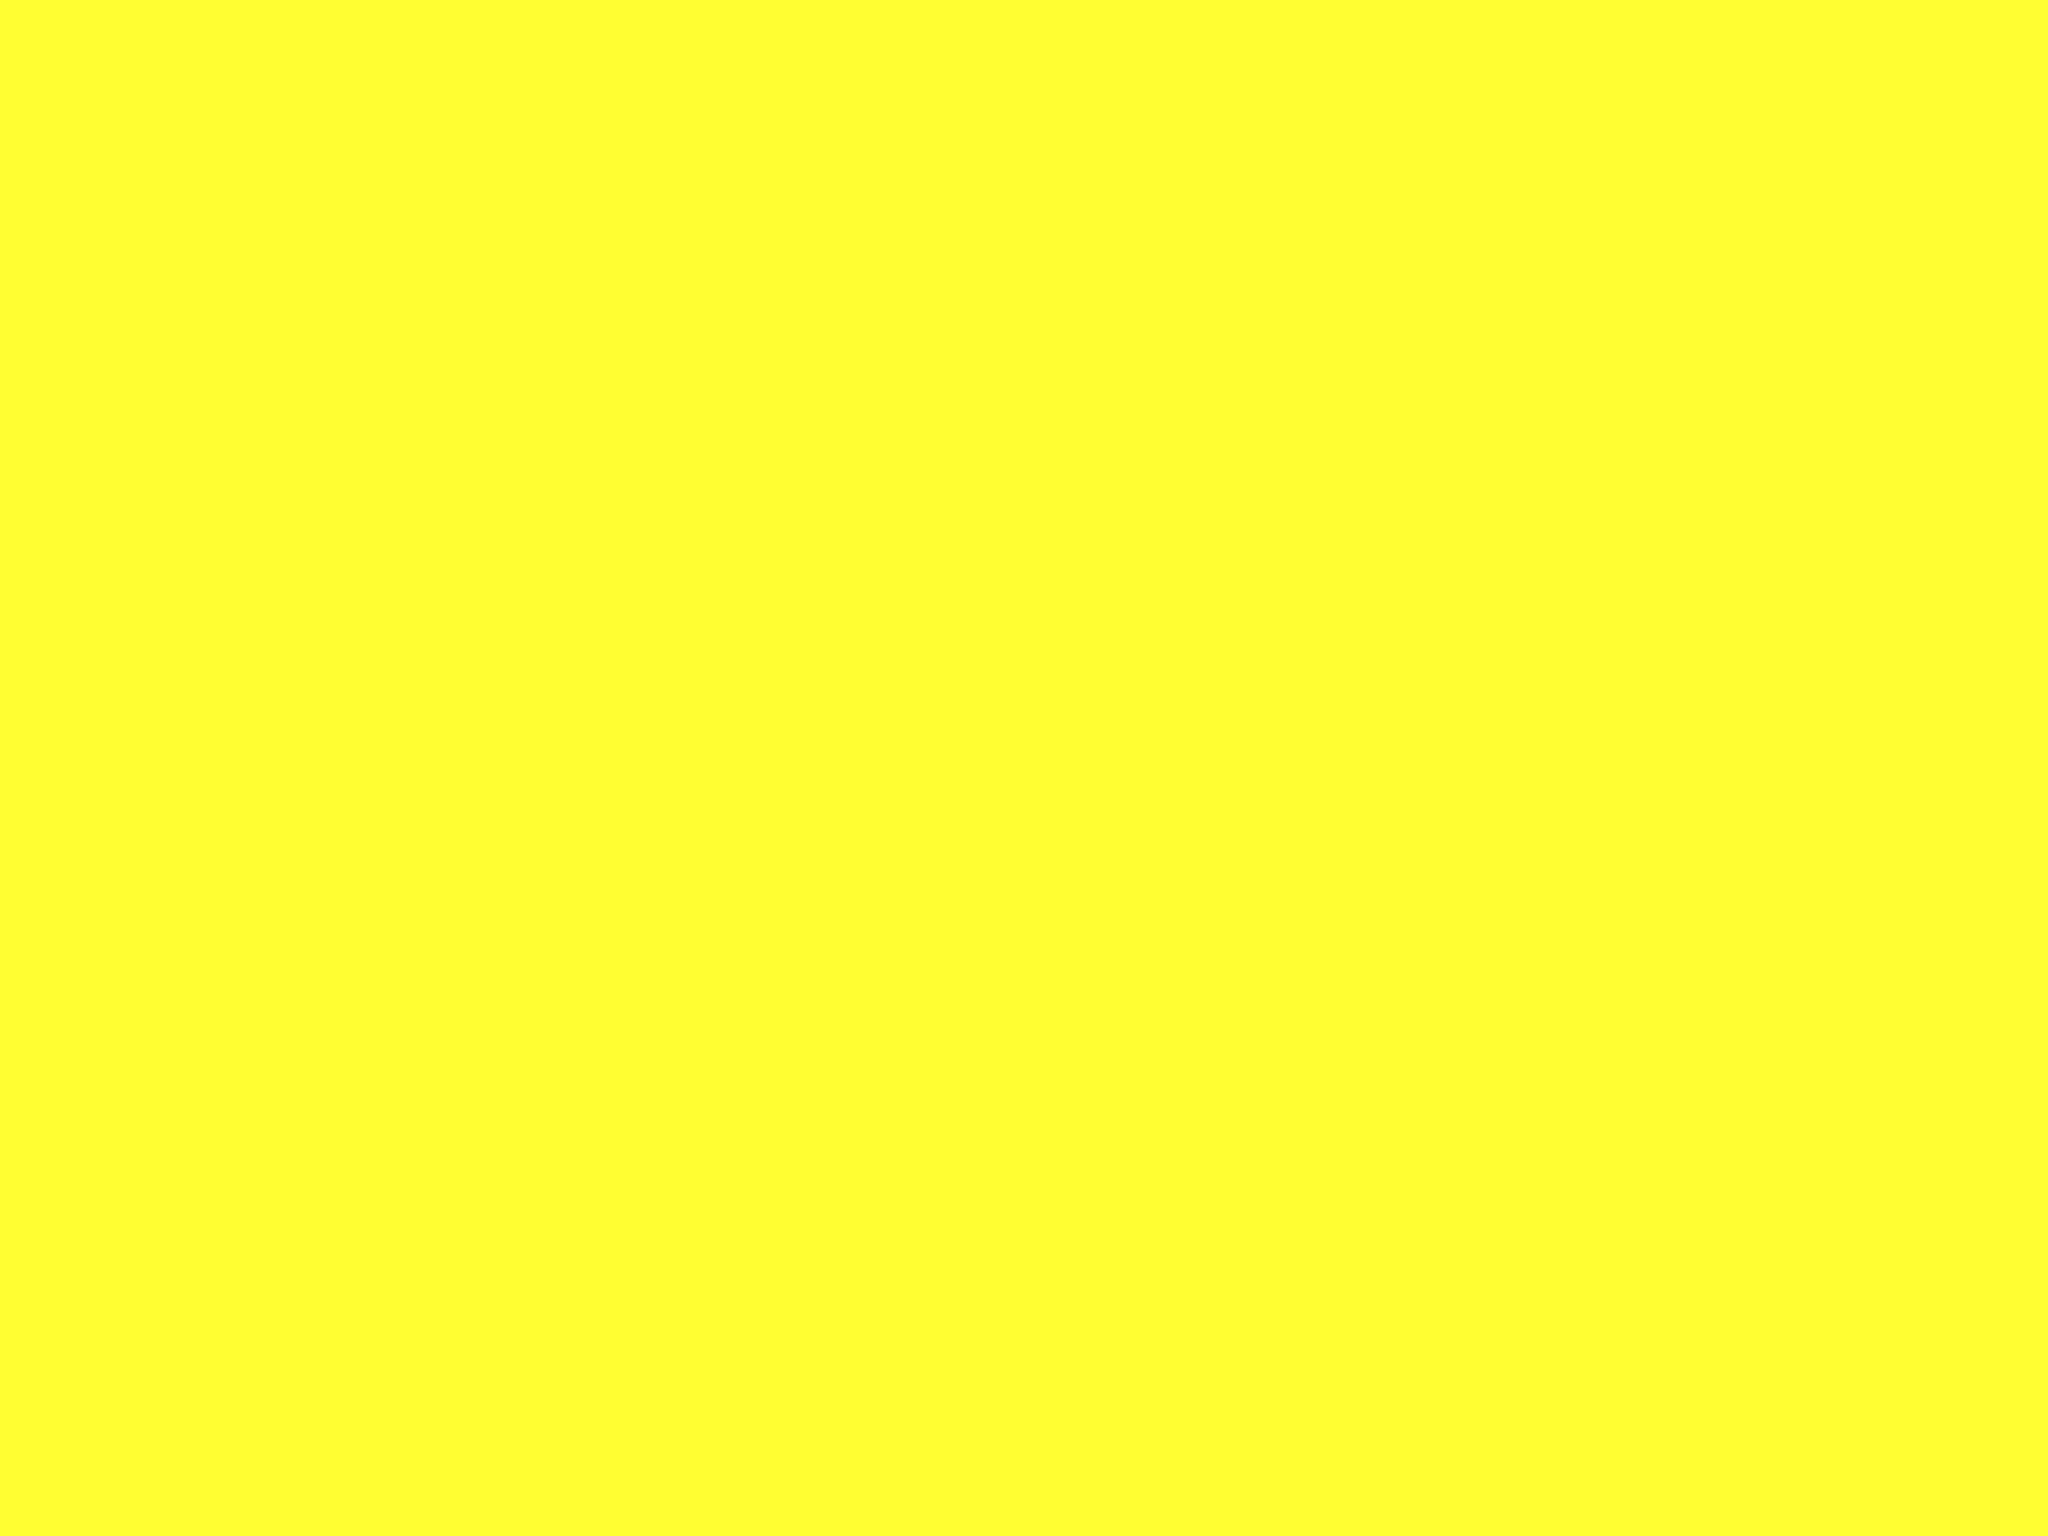 2048x1536 Yellow RYB Solid Color Background